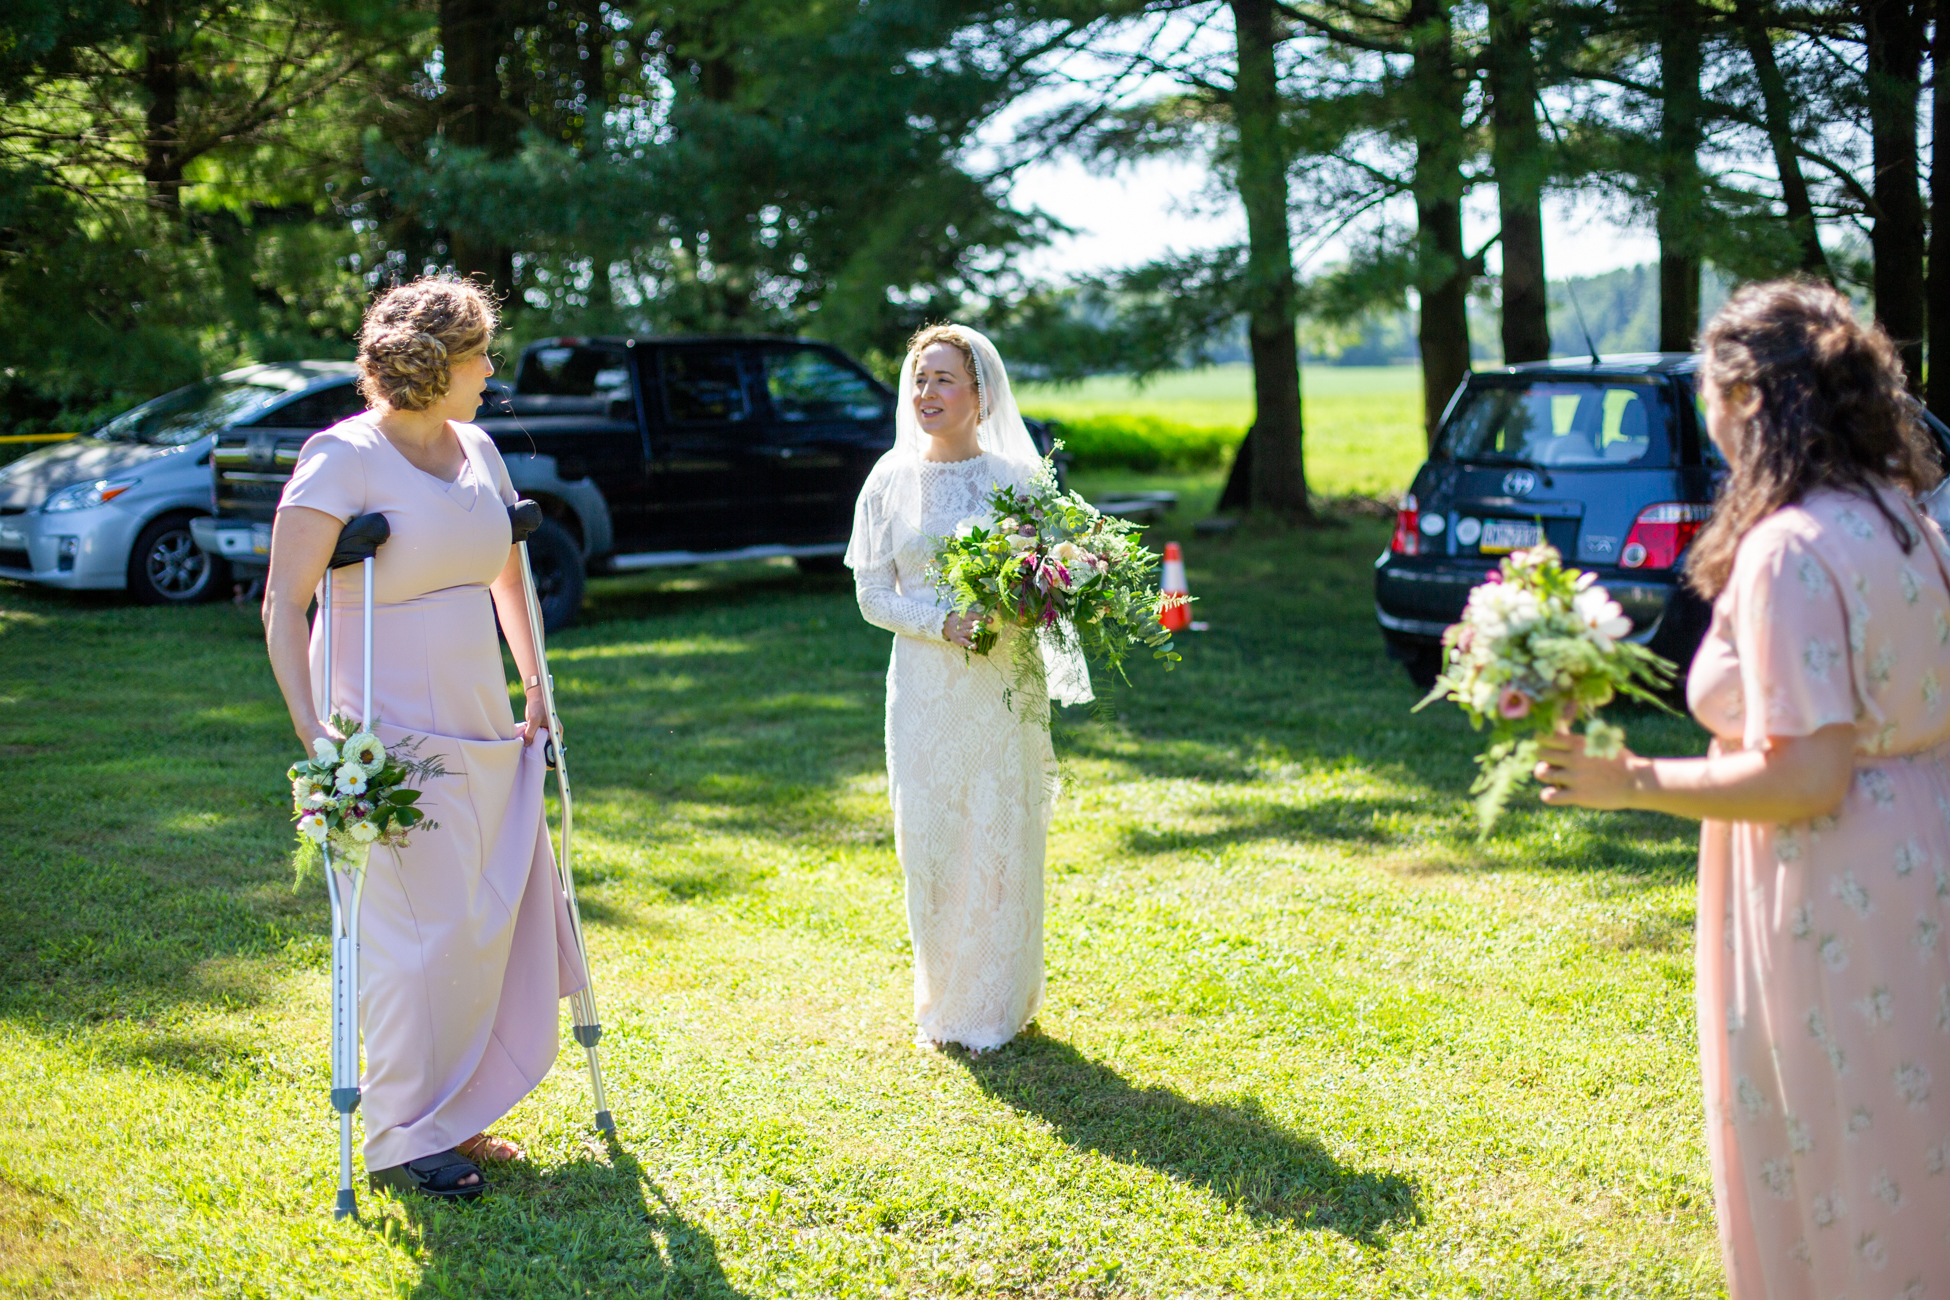 MaryFatimah and Noah's Summer Wedding at Bawa Muhaiyaddeen Fellowship Farm by Avi Loren Fox LLC-11.jpg